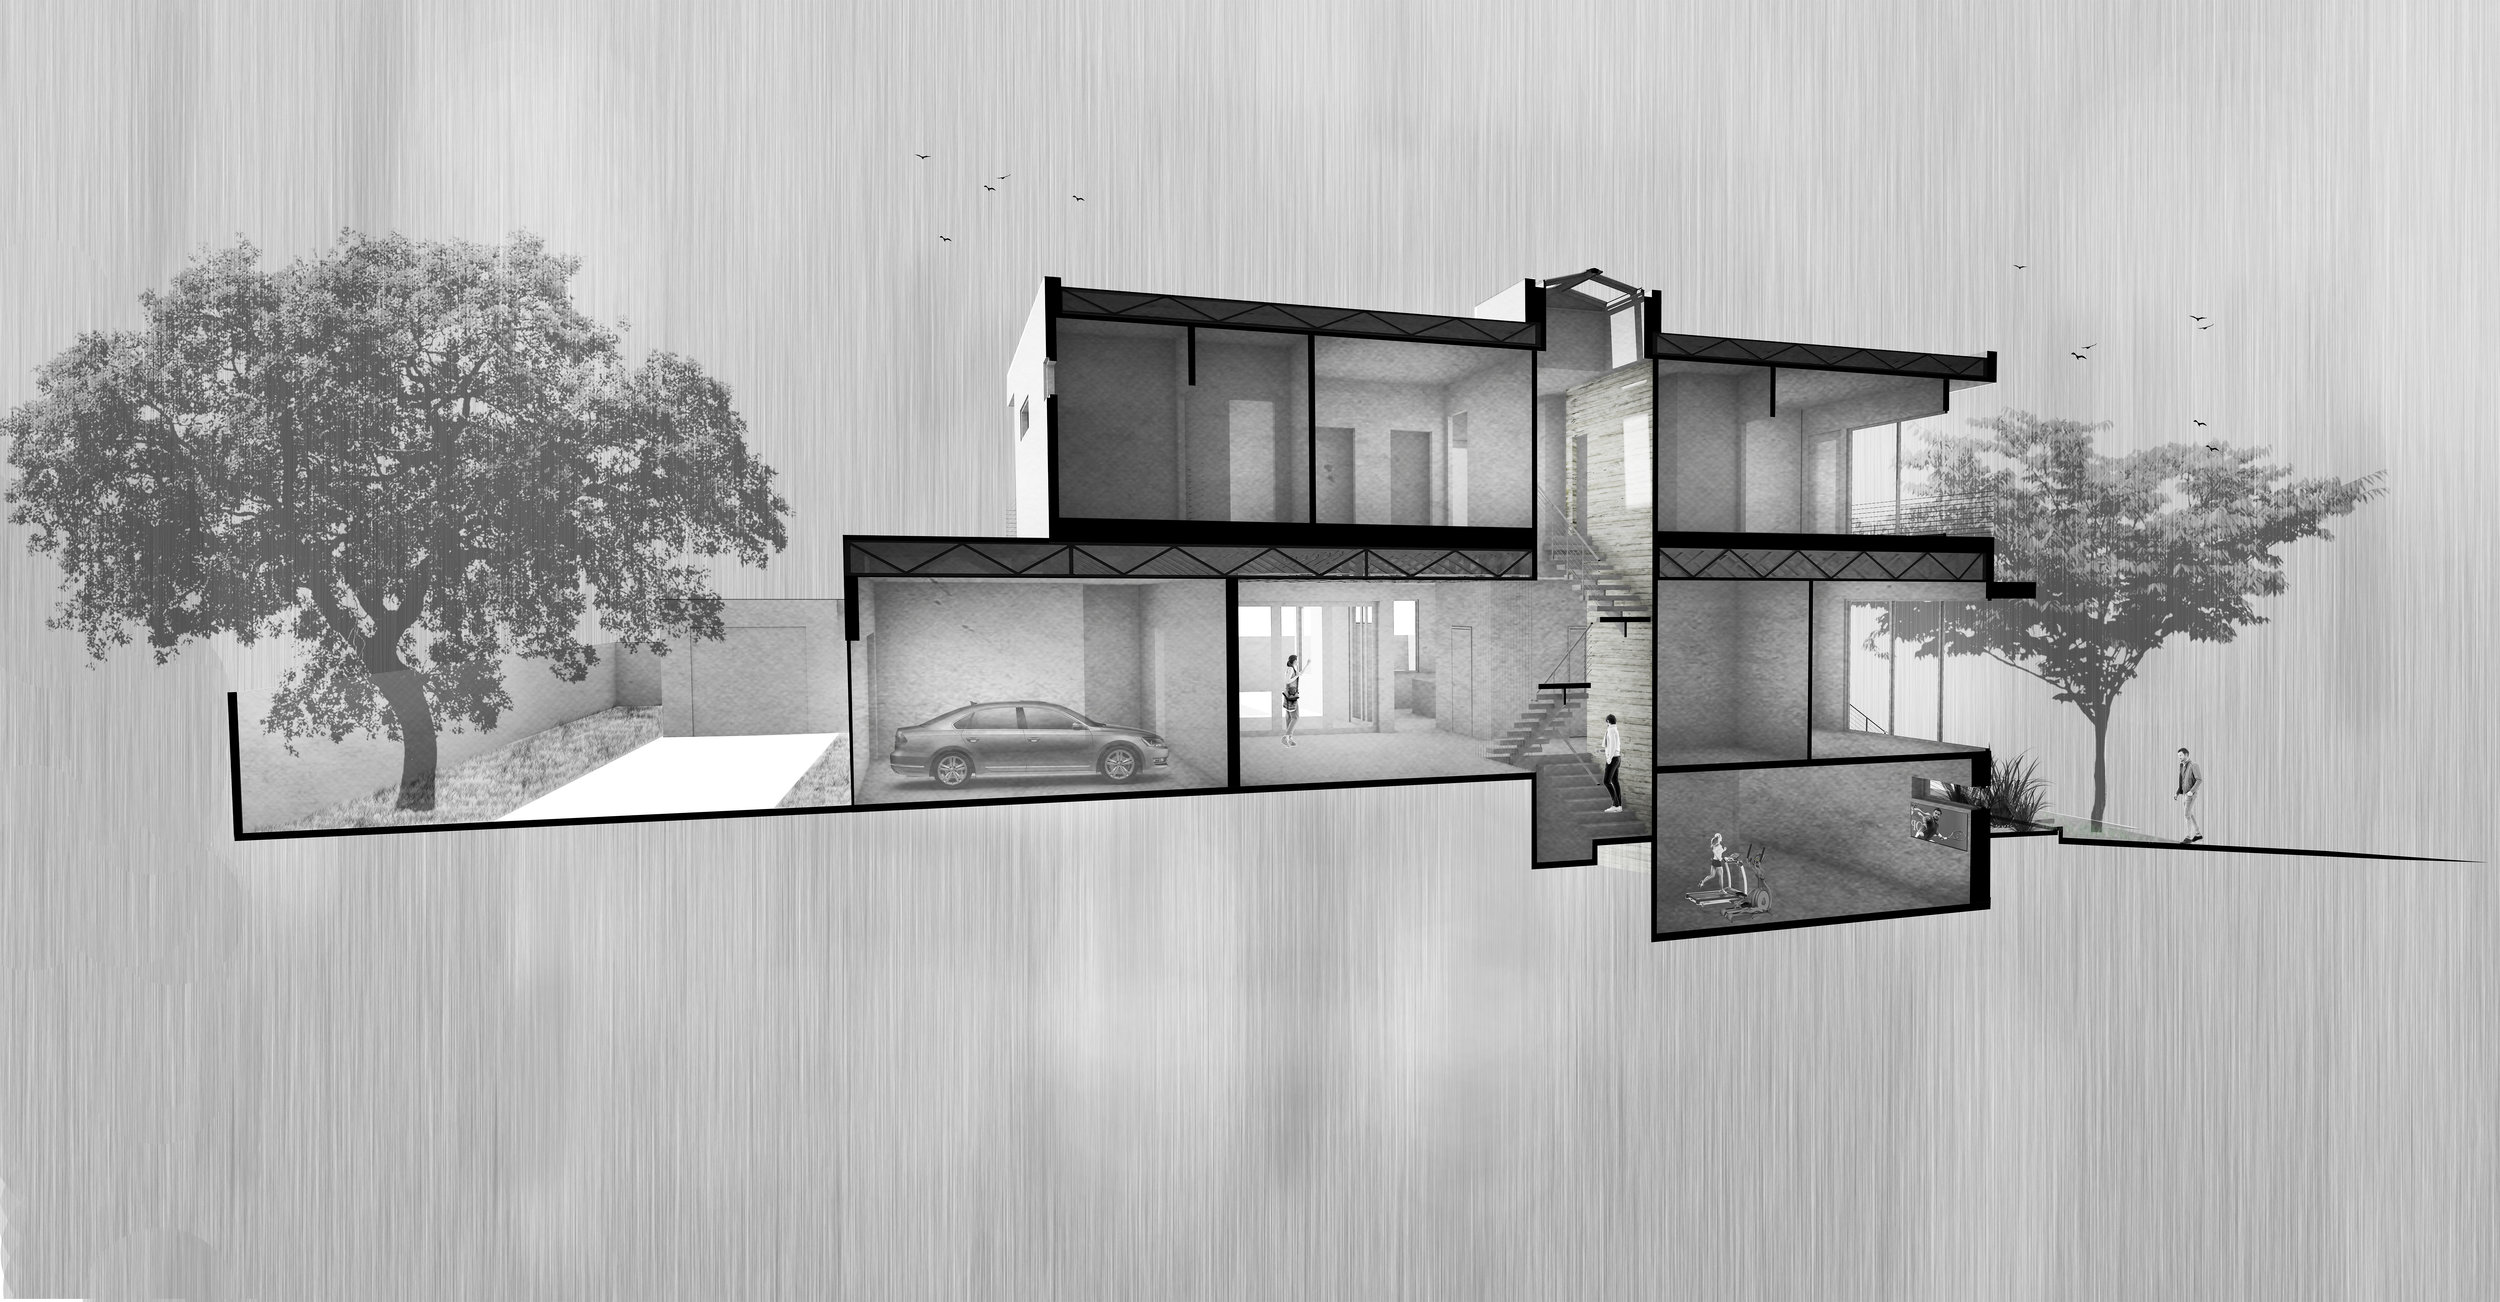 gucailo section perspective graphite small res.jpg